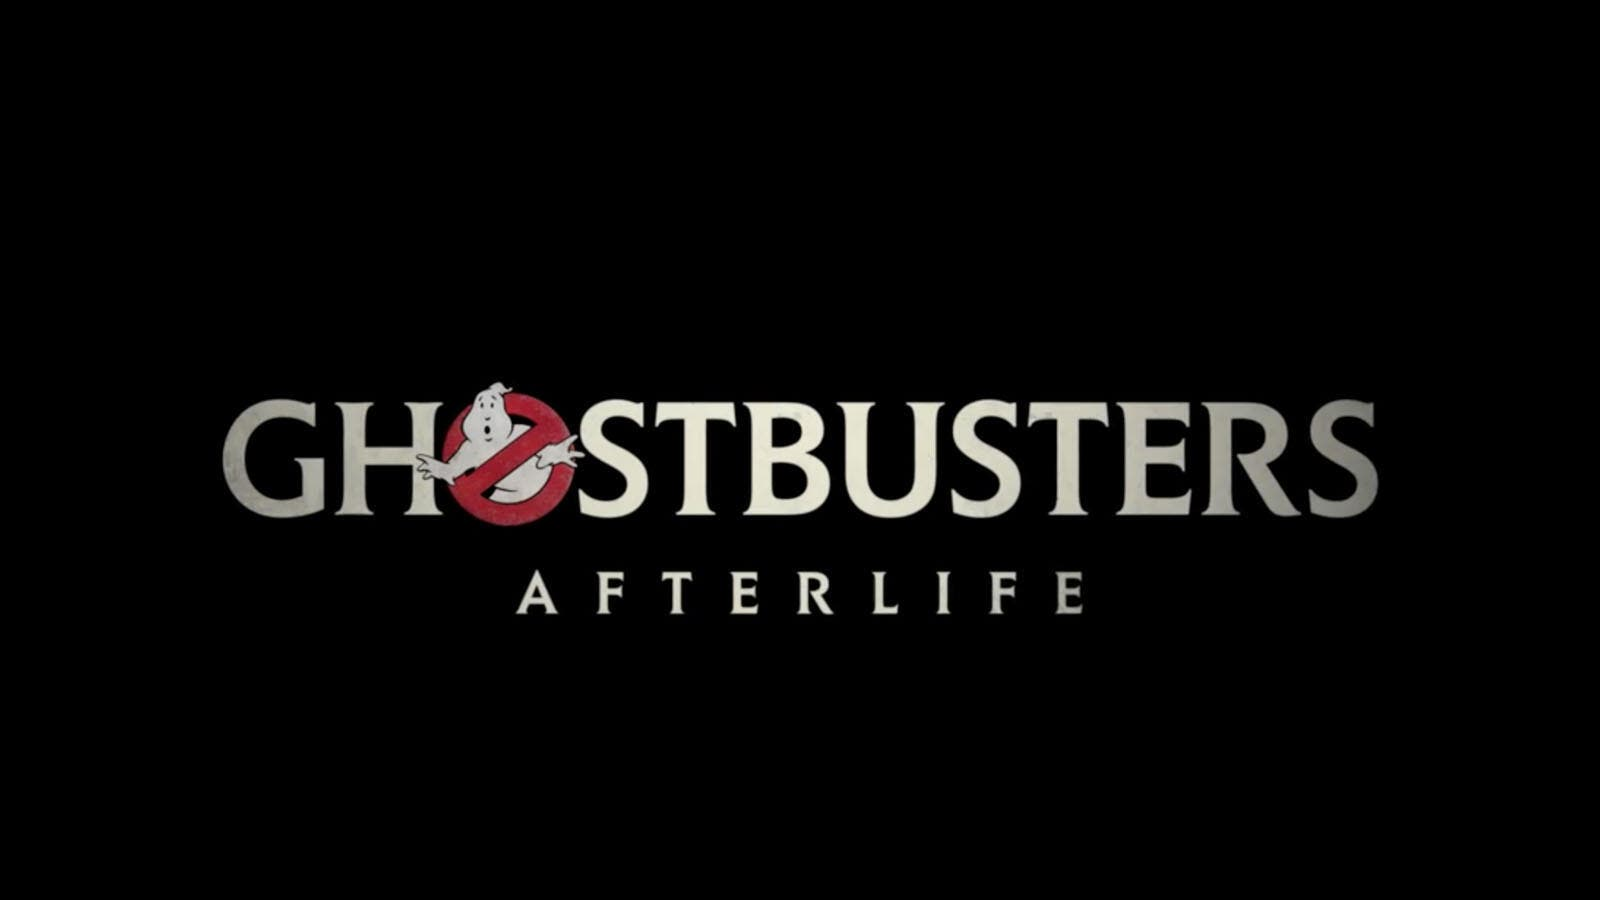 Sony delays 'Ghostbusters: Afterlife,' 'Morbius' and more movies due to coronavirus